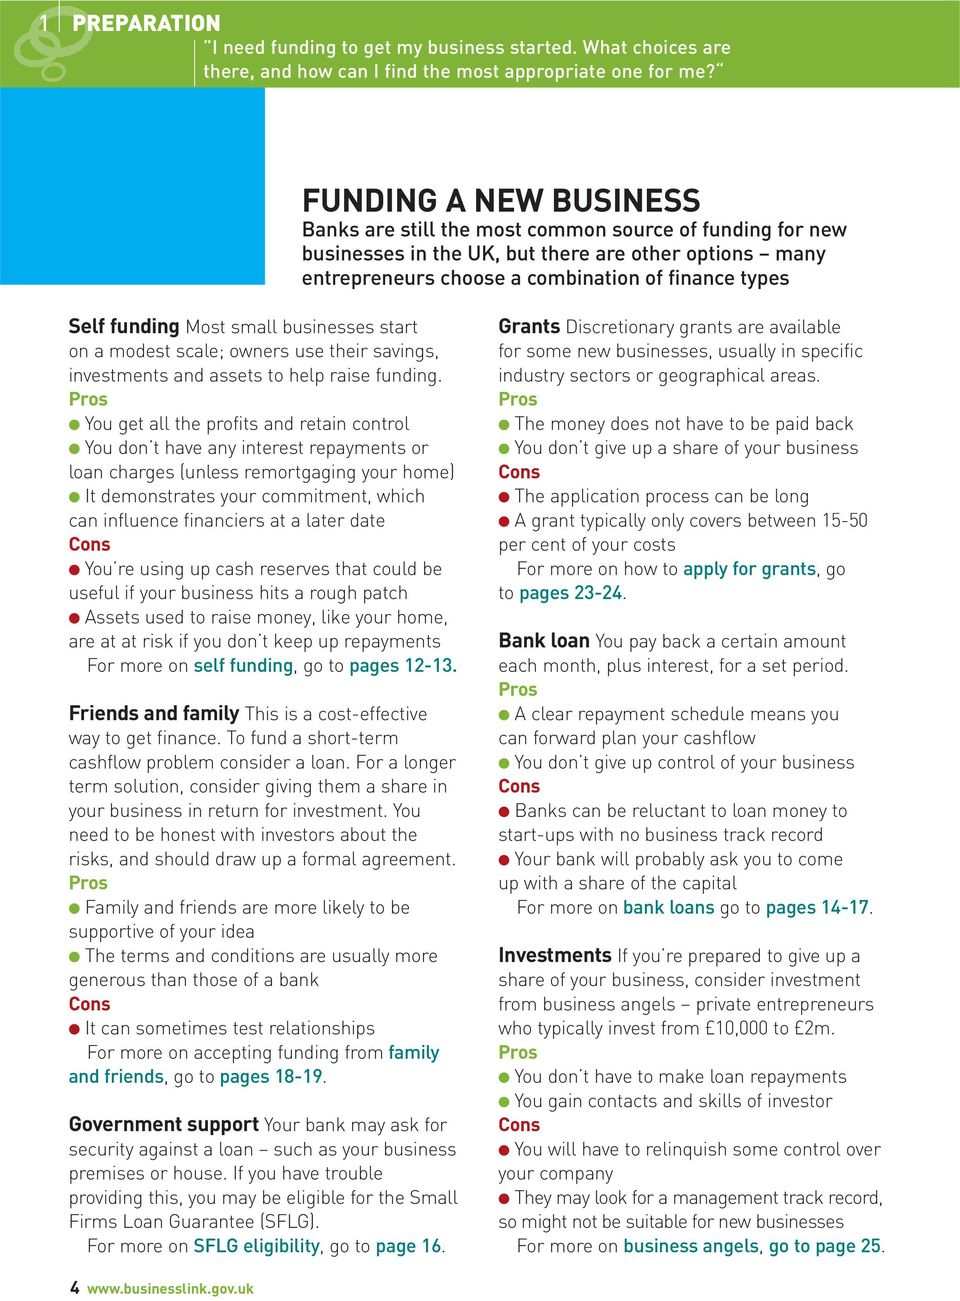 funding Most small businesses start on a modest scale; owners use their savings, investments and assets to help raise funding.